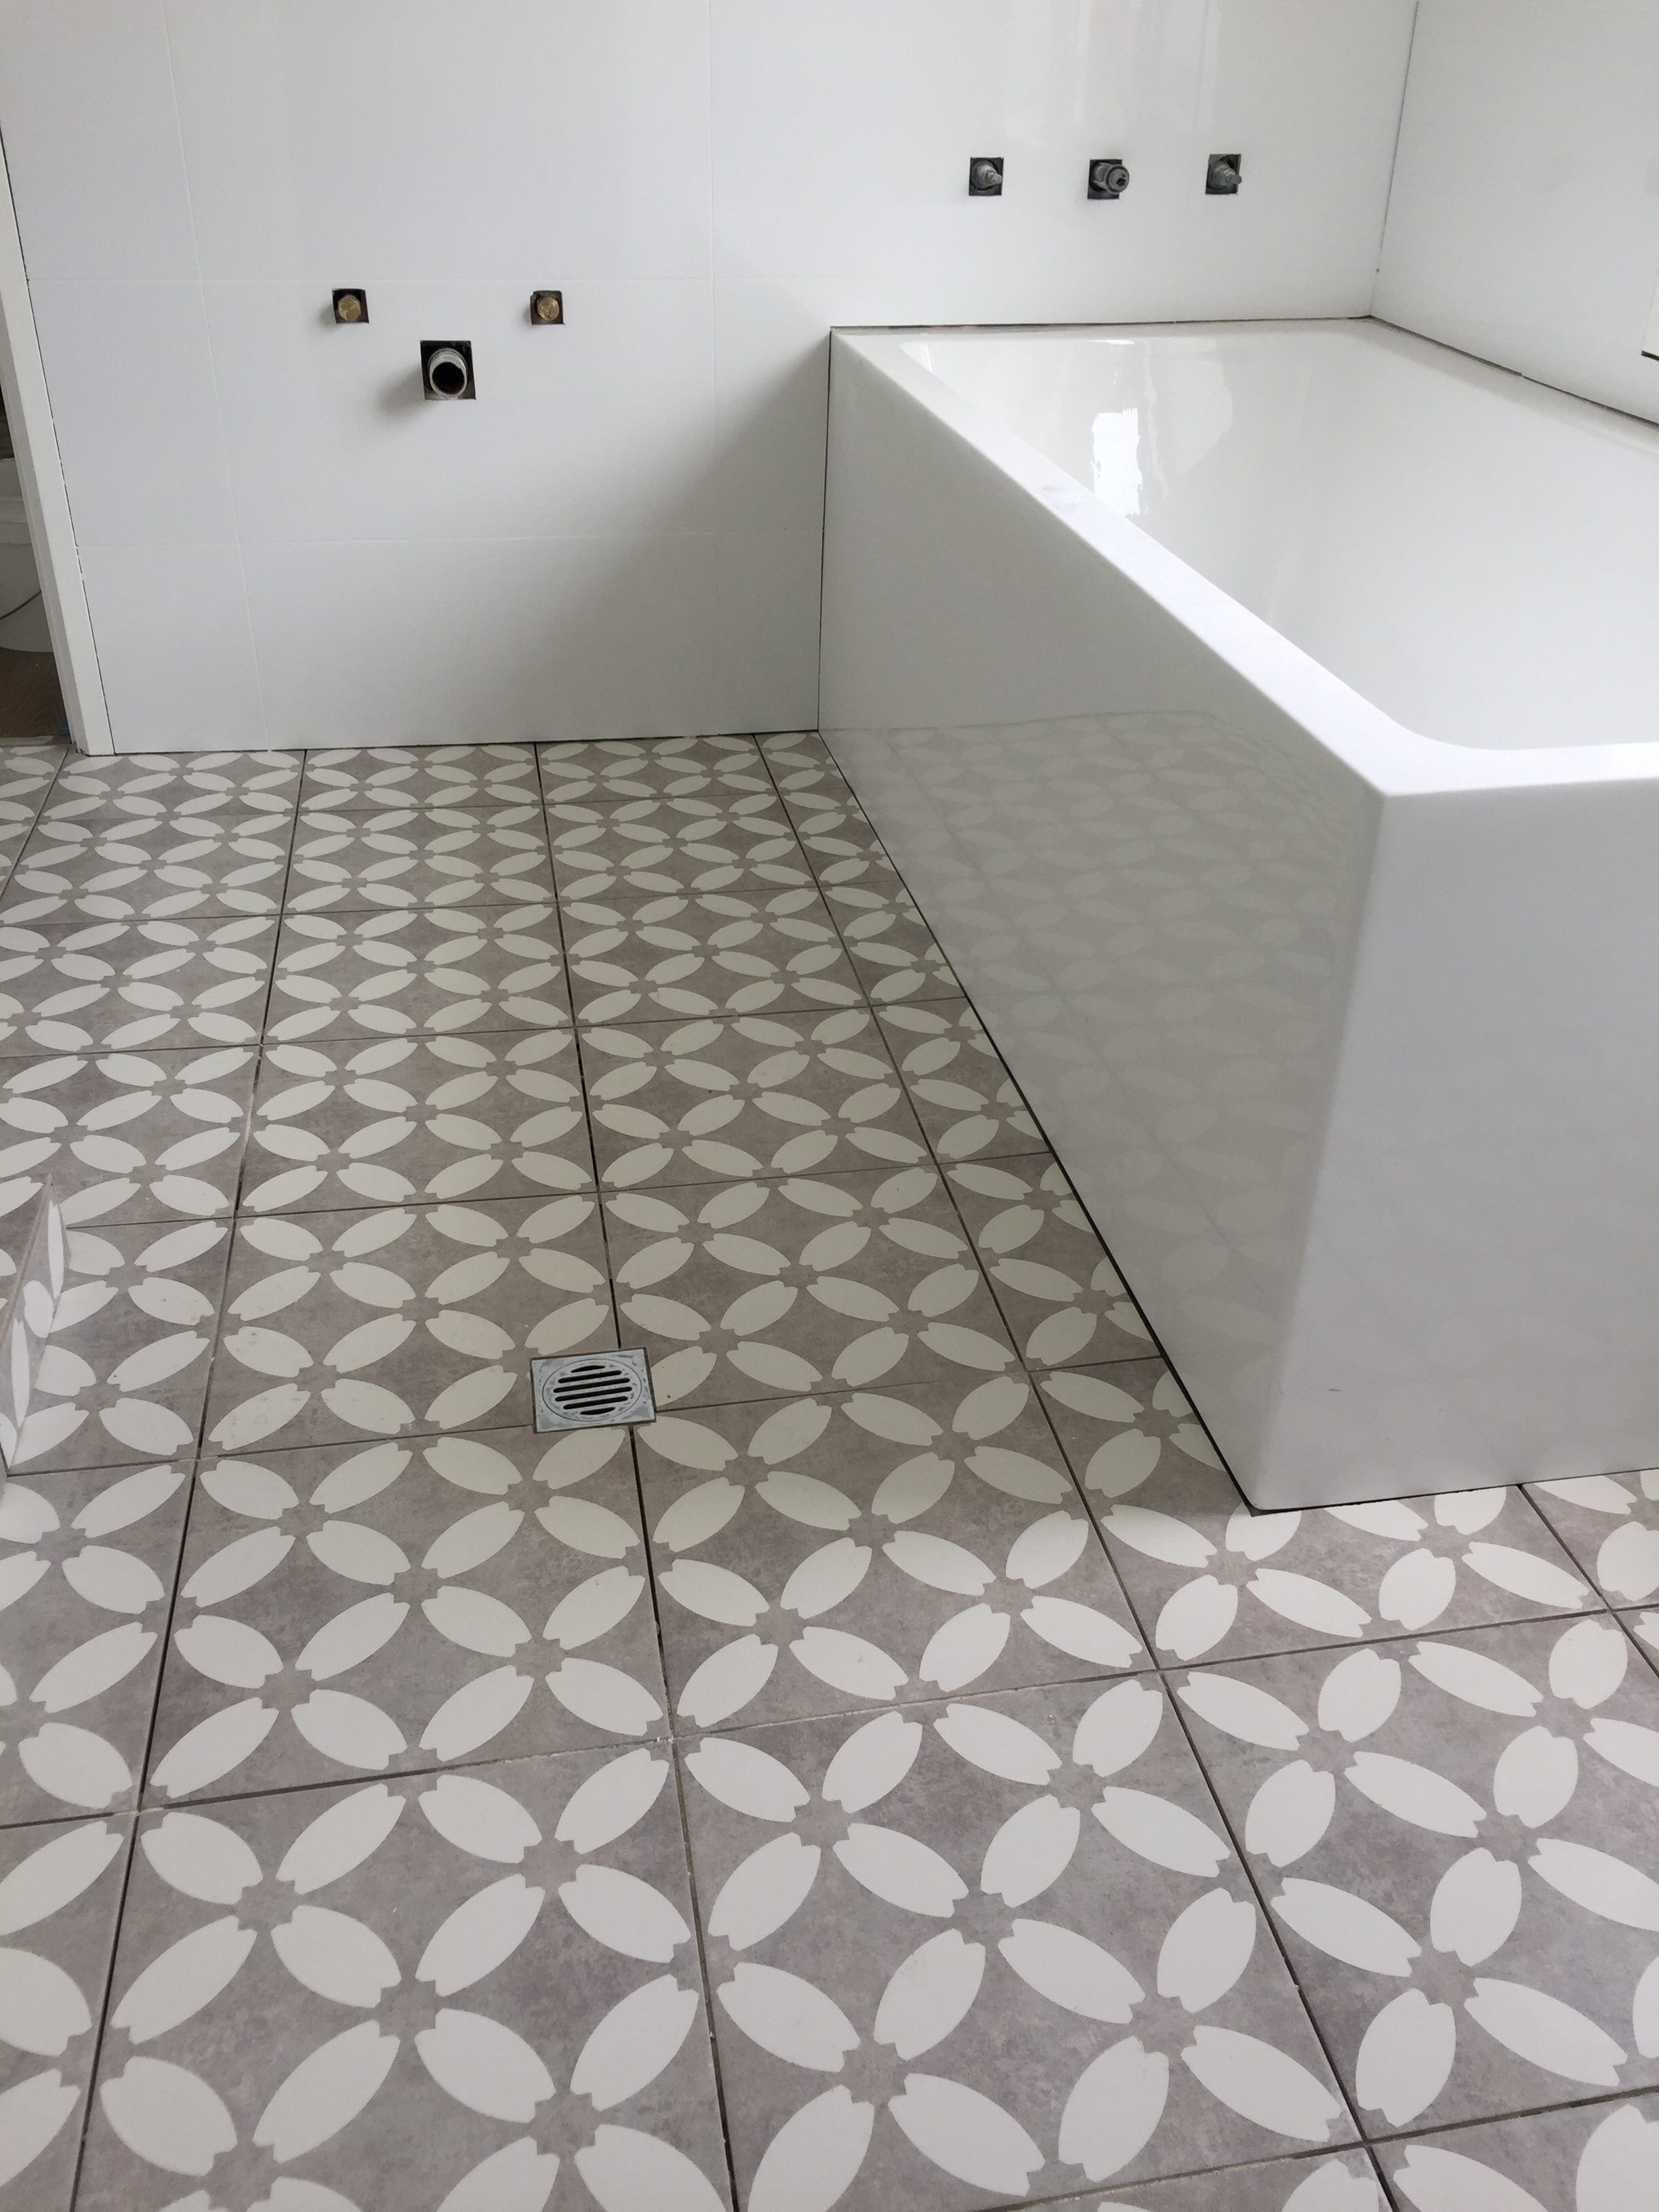 South adelaide tilers bathroom floor tiling pespective tiling south adelaide bathroom tilers the floral floor tiles doublecrazyfo Images